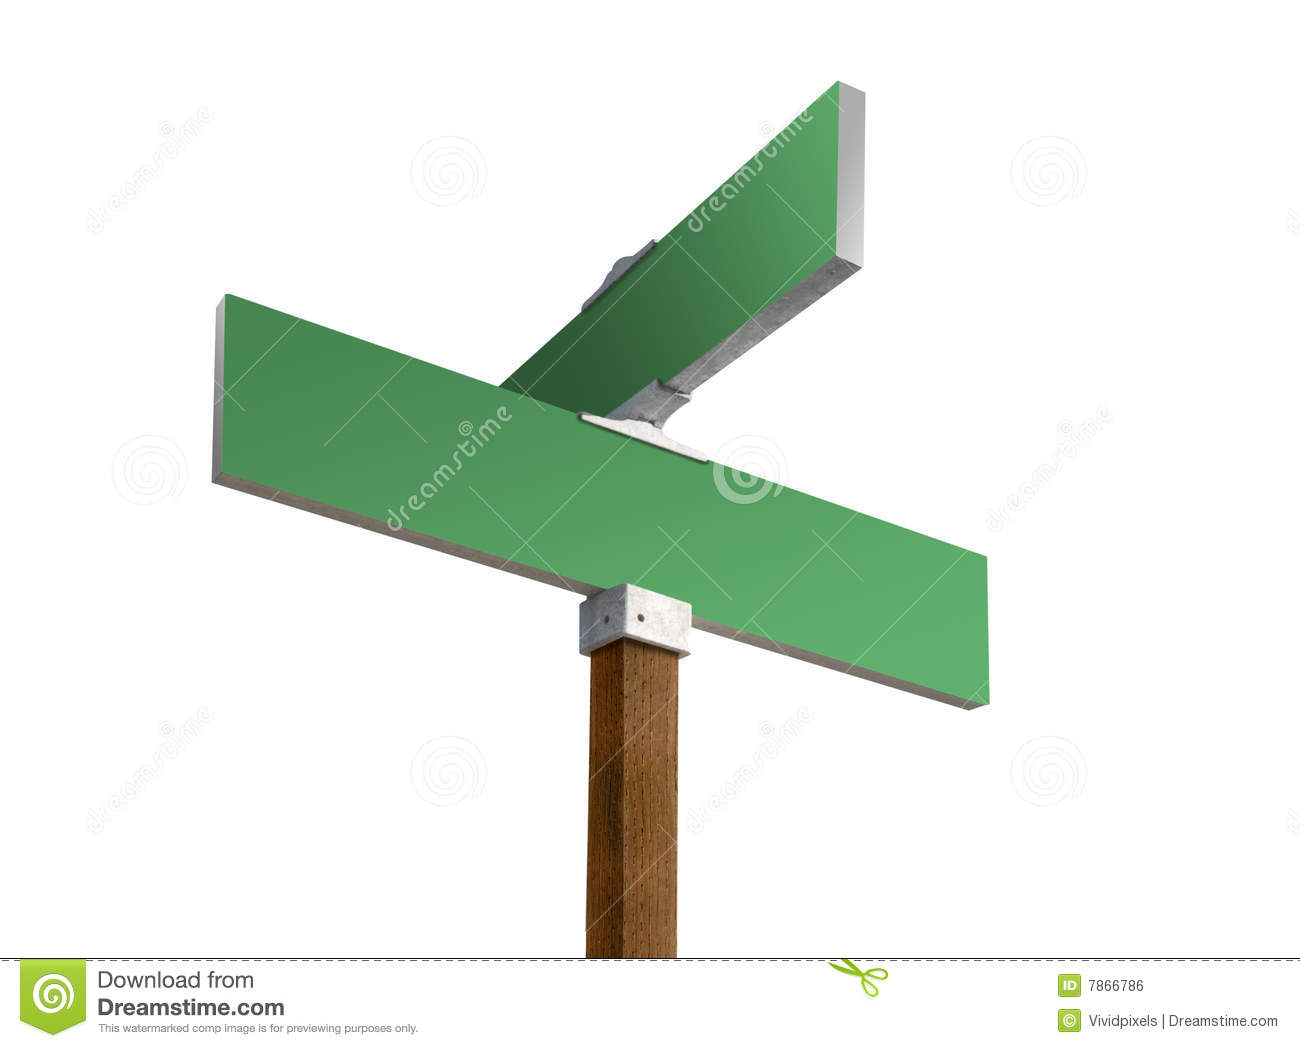 Blank street sign stock illustration. Illustration of drawing - 884773